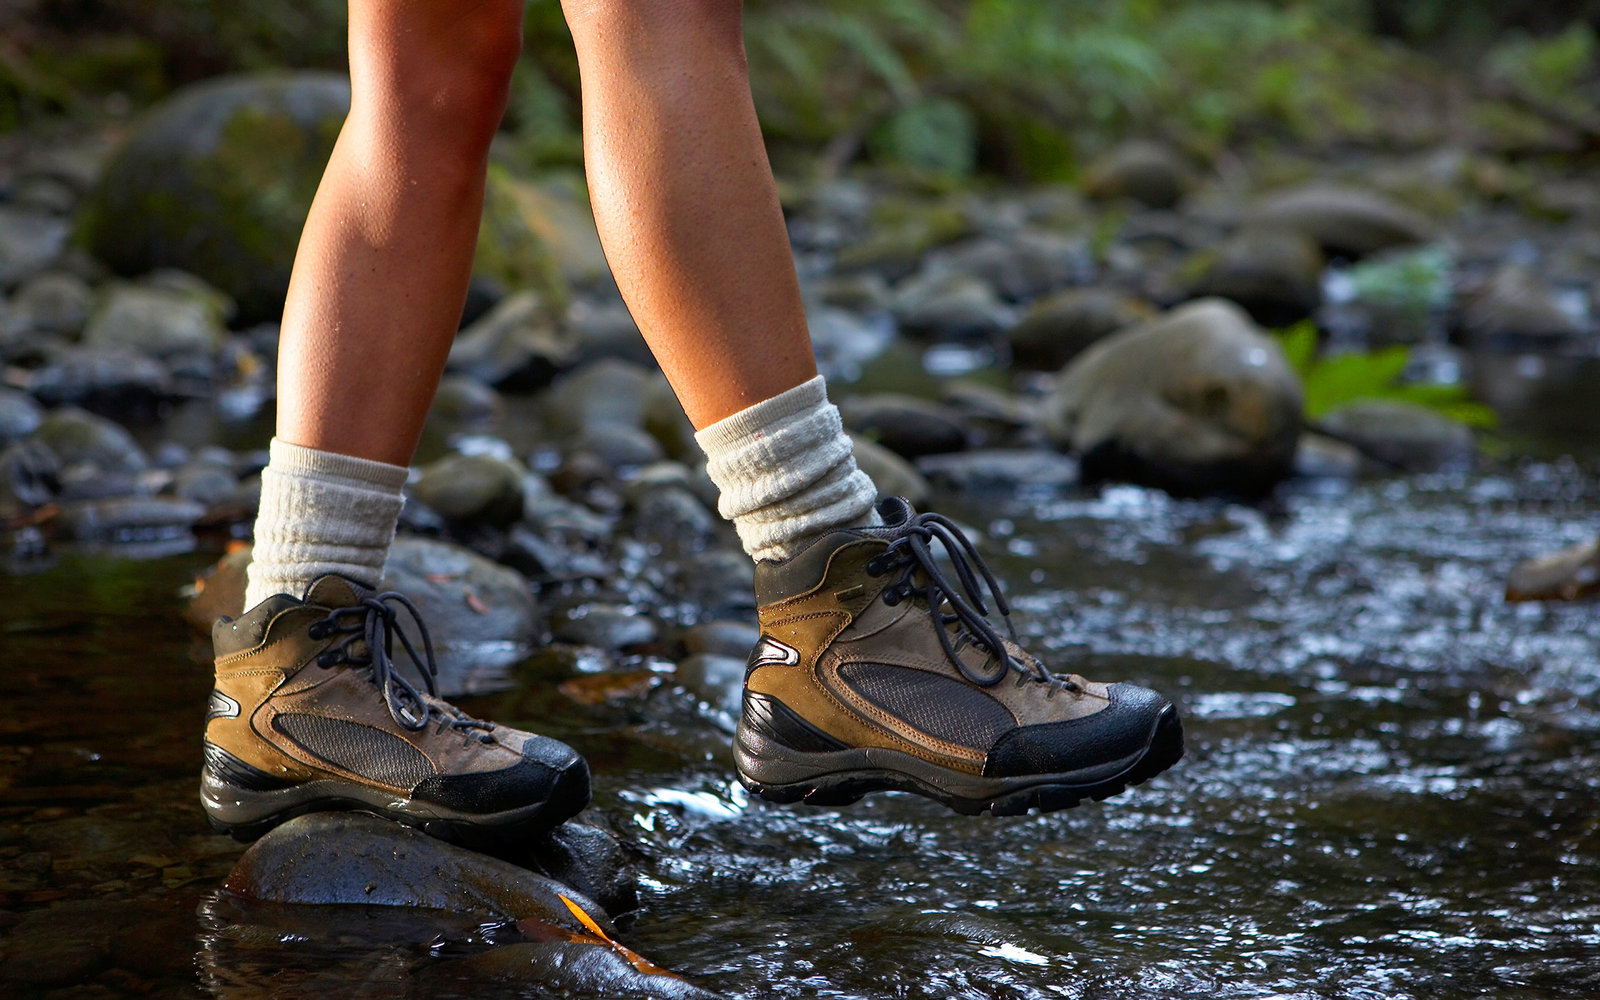 All you need for your first backpacking trip: